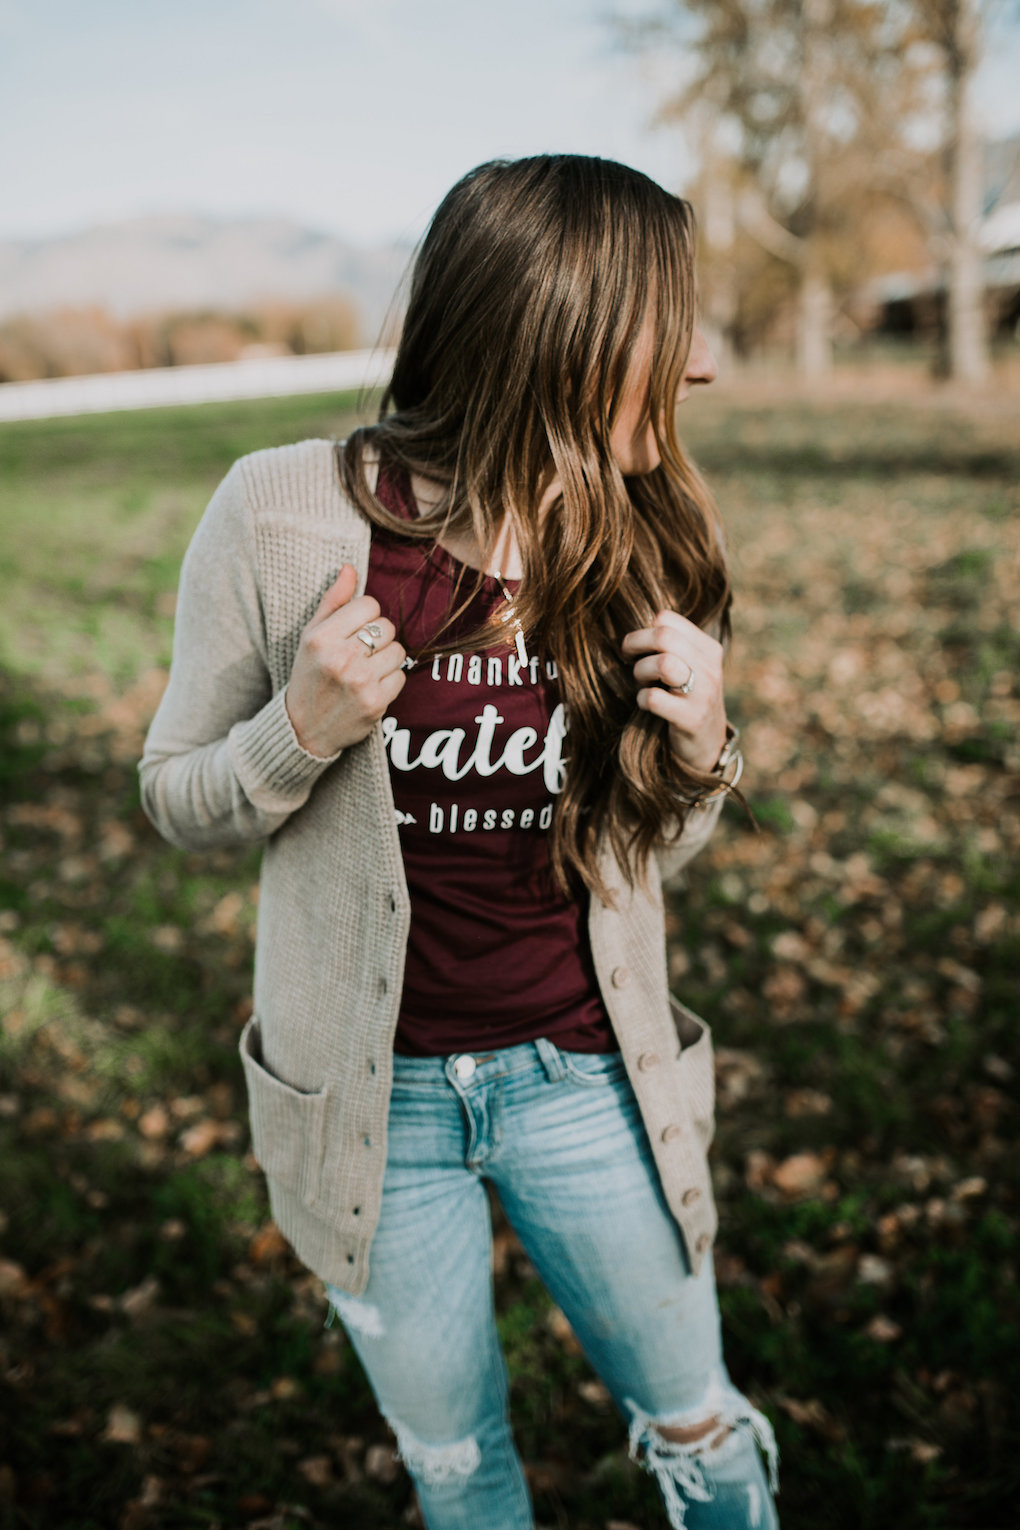 girl standing in field in wine colored grateful tee a long cream cardigan and distressed denim jeans with loosely curled brown hair